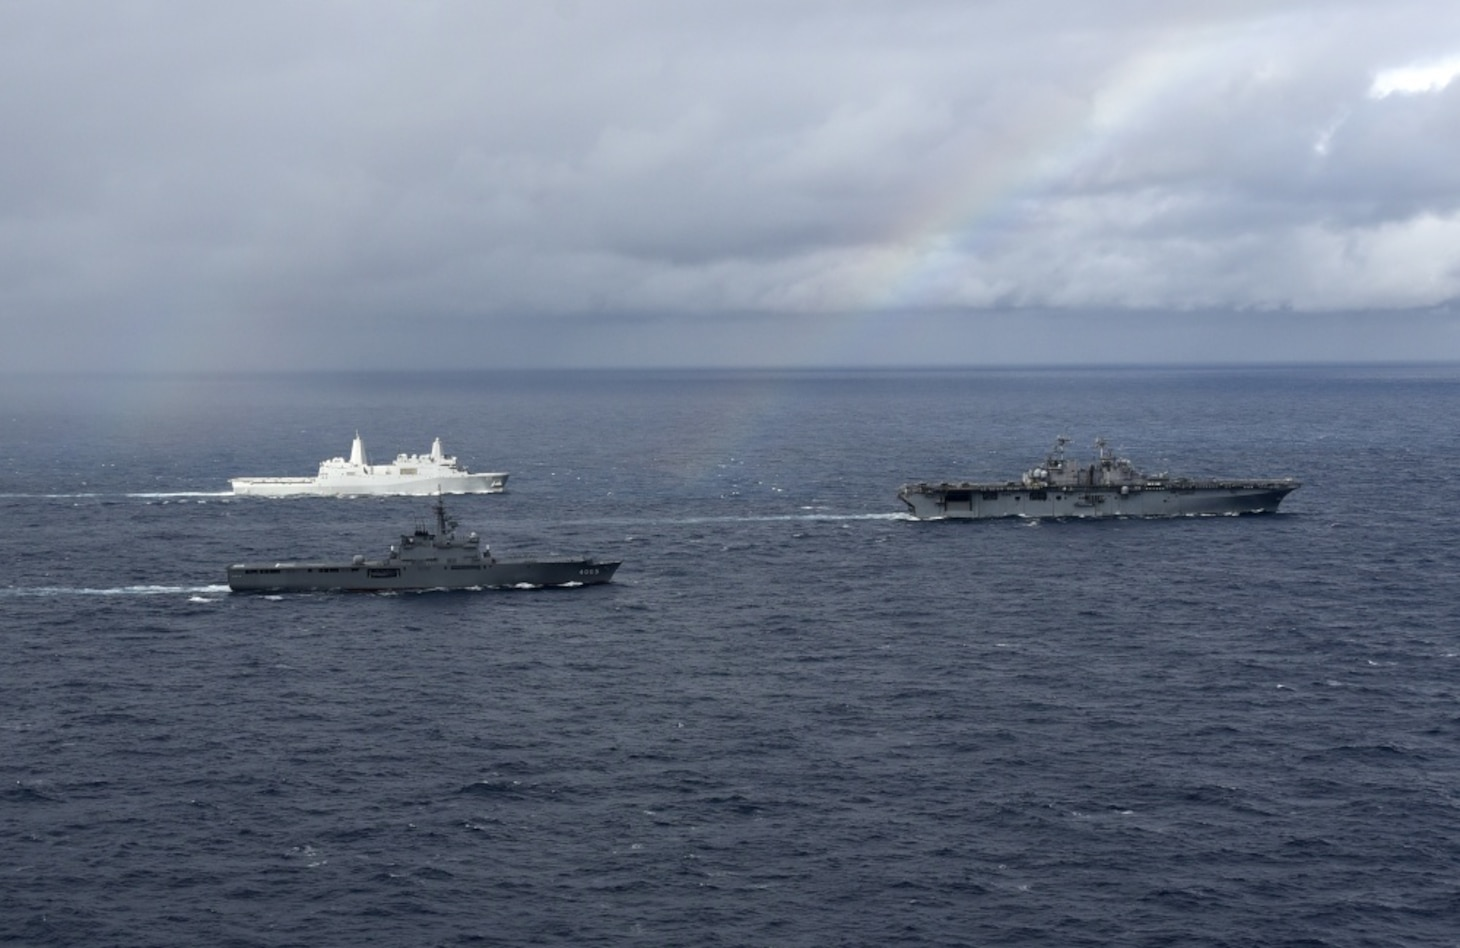 EAST CHINA SEA (Jan. 12, 2019) – The amphibious transport dock ship USS Green Bay (LPD 20) Japan Maritime Self-Defense Force amphibious transport dock ship JS Kunisaki (LST 4003), and amphibious assault ship USS Wasp (LHD 1) transit in formation during a cooperative deployment. Wasp, flagship of Wasp Amphibious Ready Group, is operating in the Indo-Pacific region to enhance interoperability with partners and serve as a ready-response force for any type of contingency